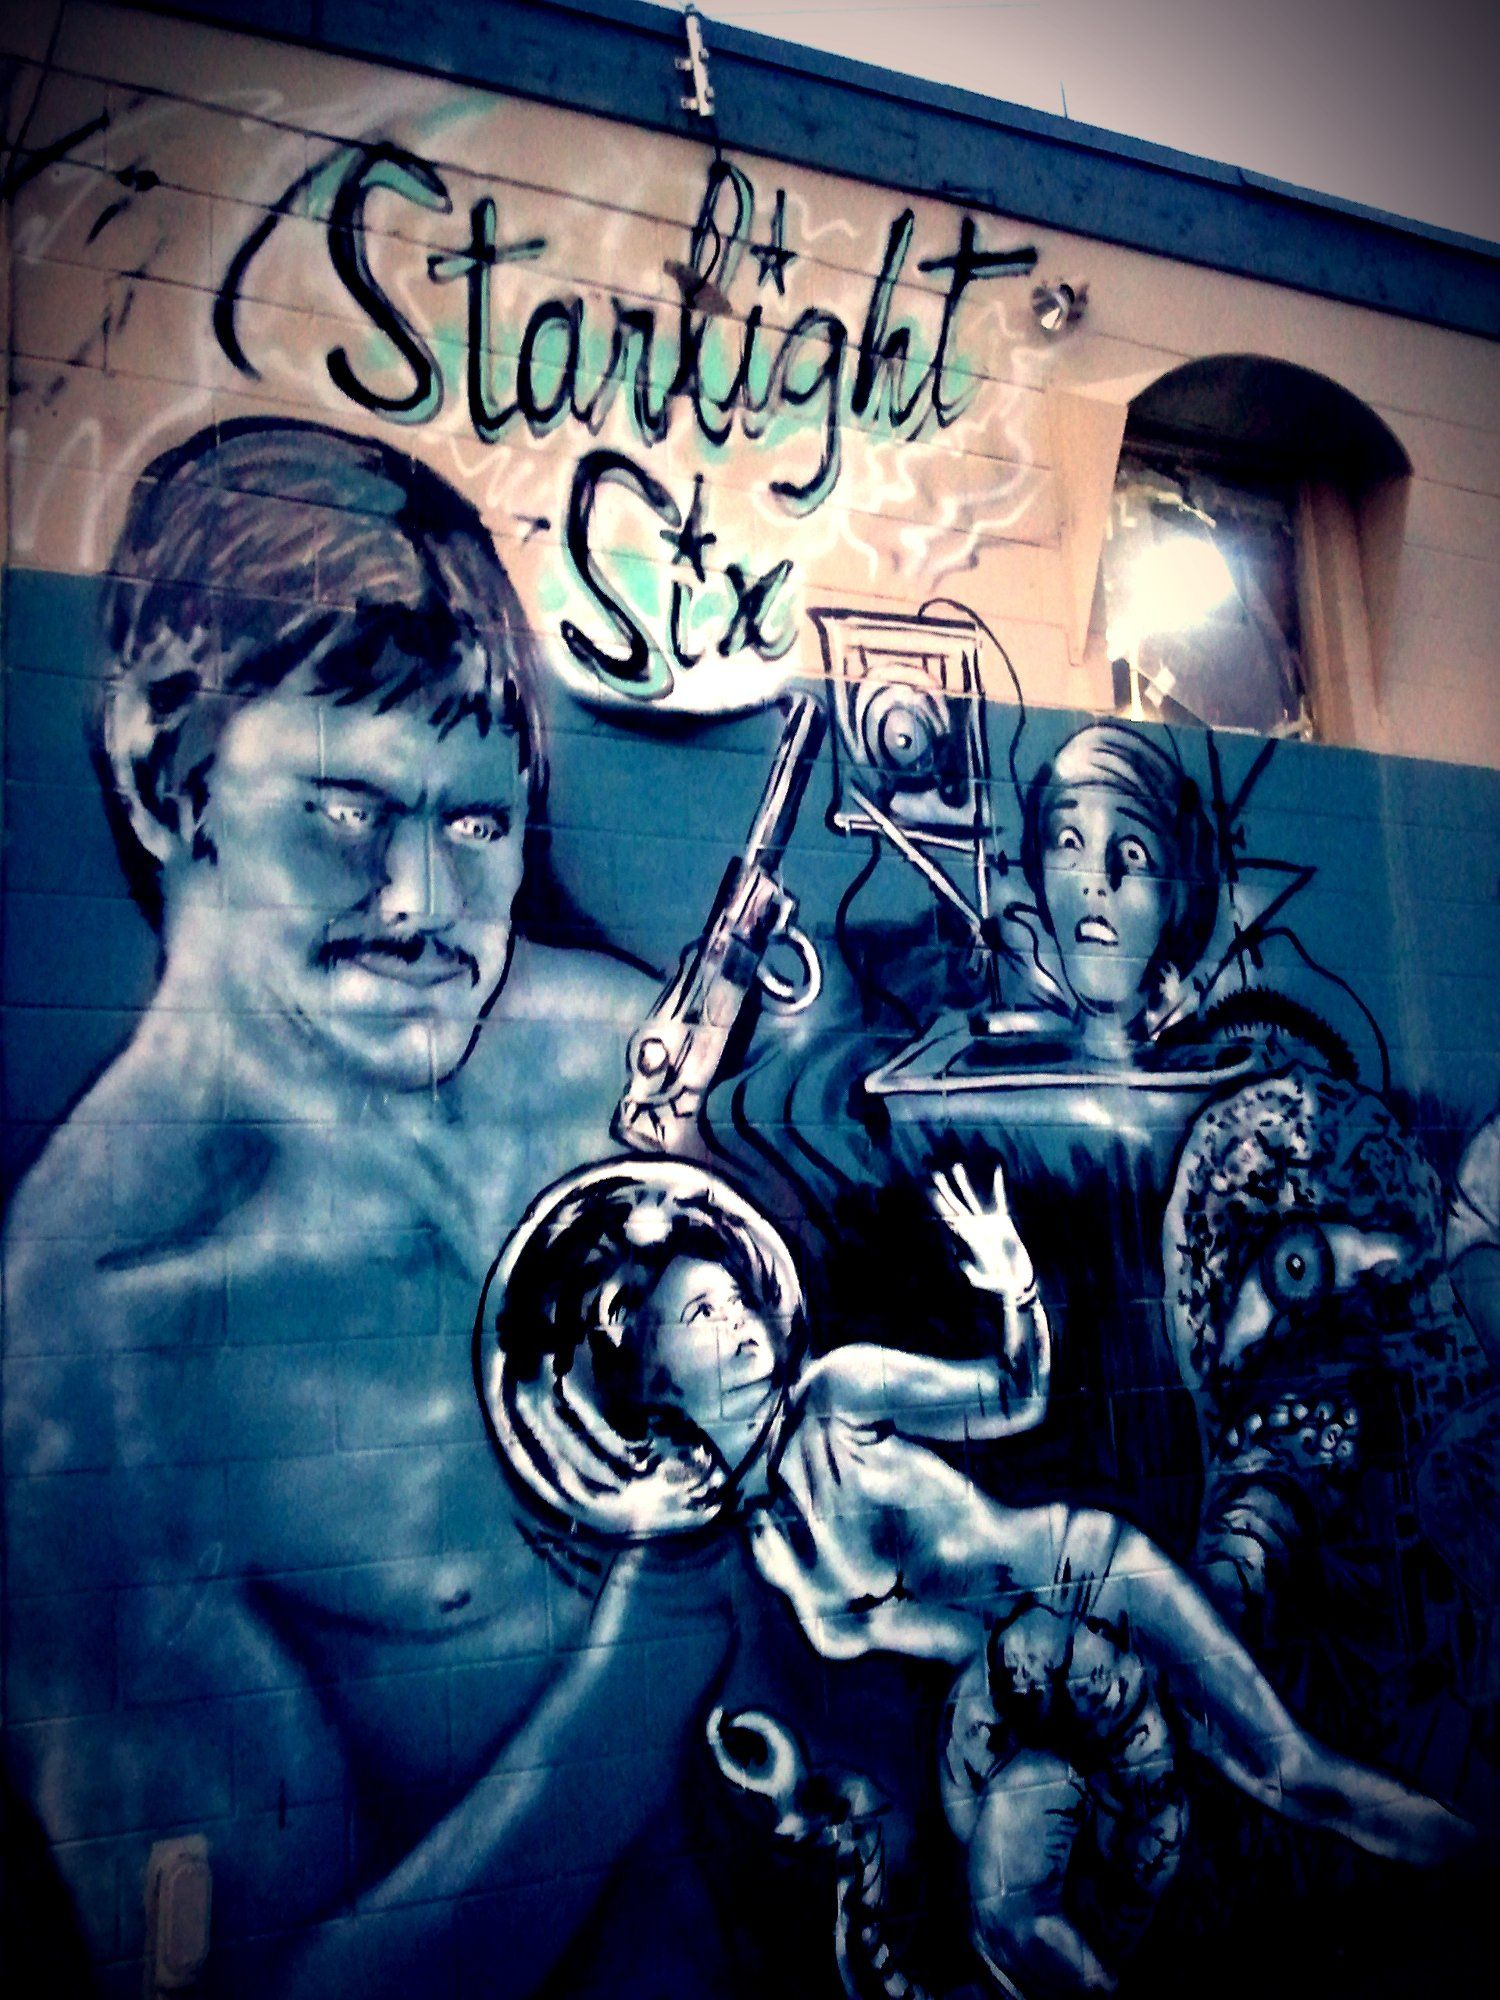 One of the murals at Starlight Six Drivein Theatre